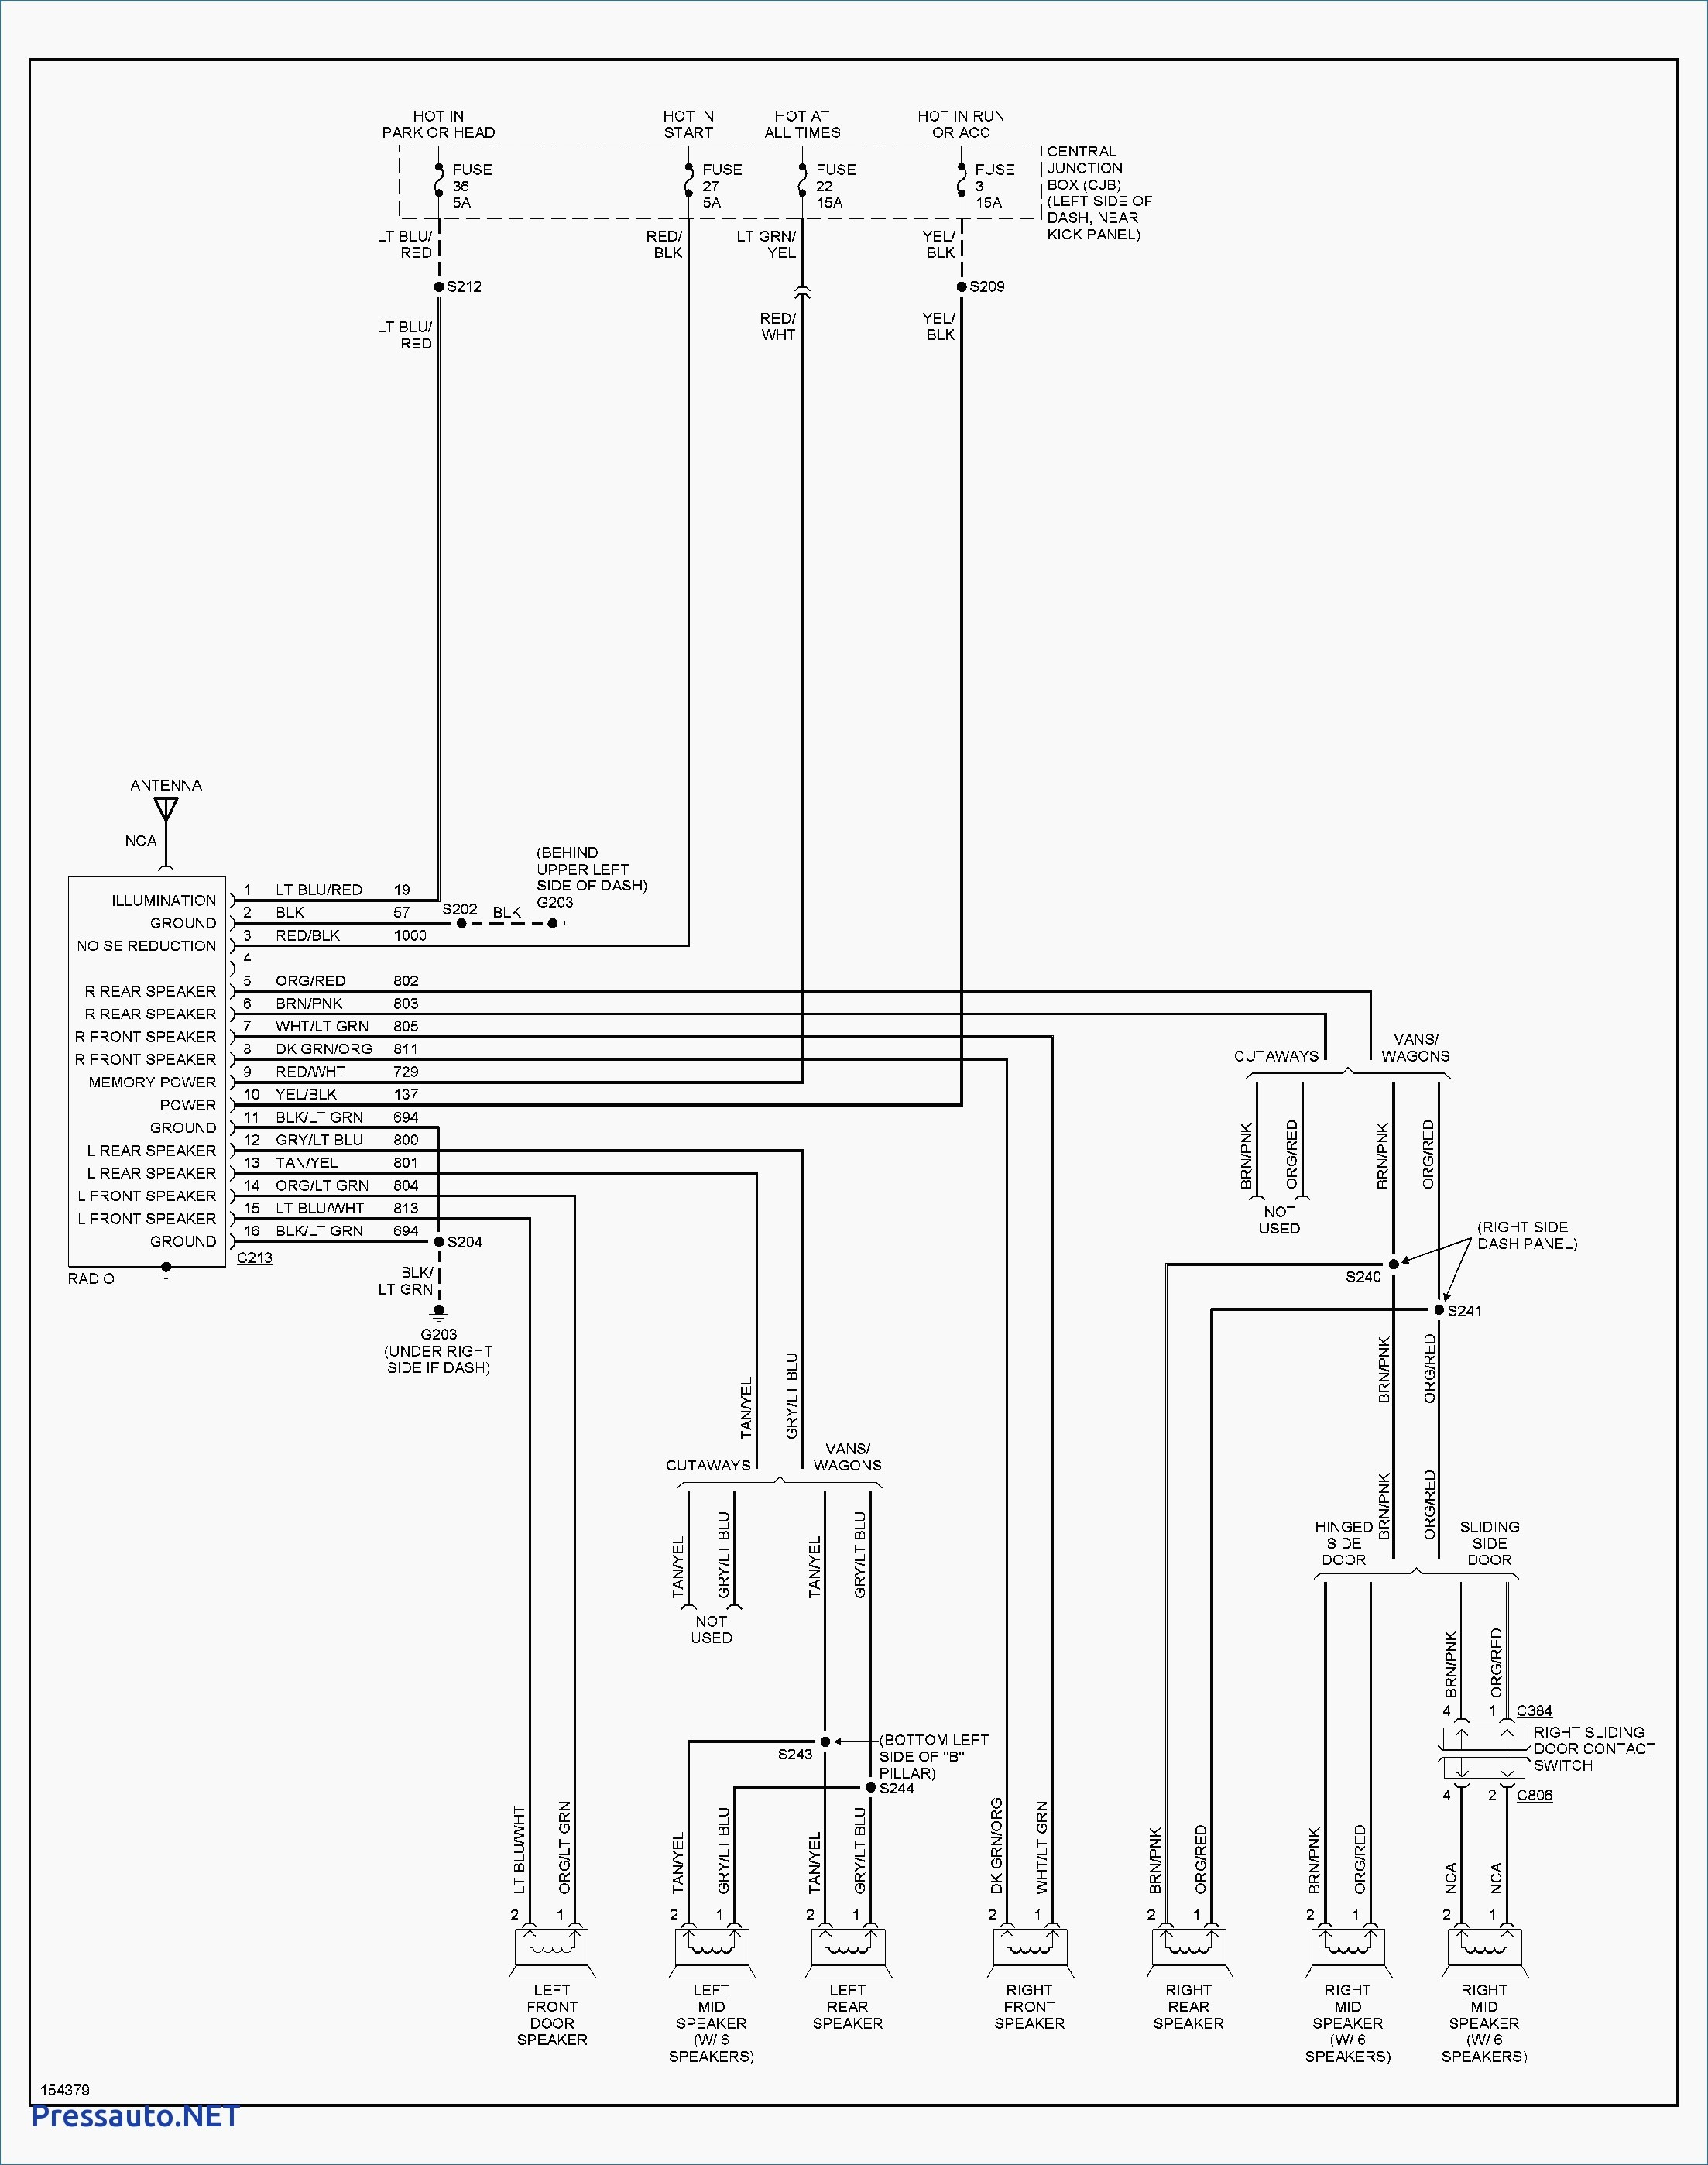 2002 ford F250 Radio Wiring Diagram 1999 ford Ranger Wiring Diagram and 2004 to Wiring Diagram Of 2002 ford F250 Radio Wiring Diagram